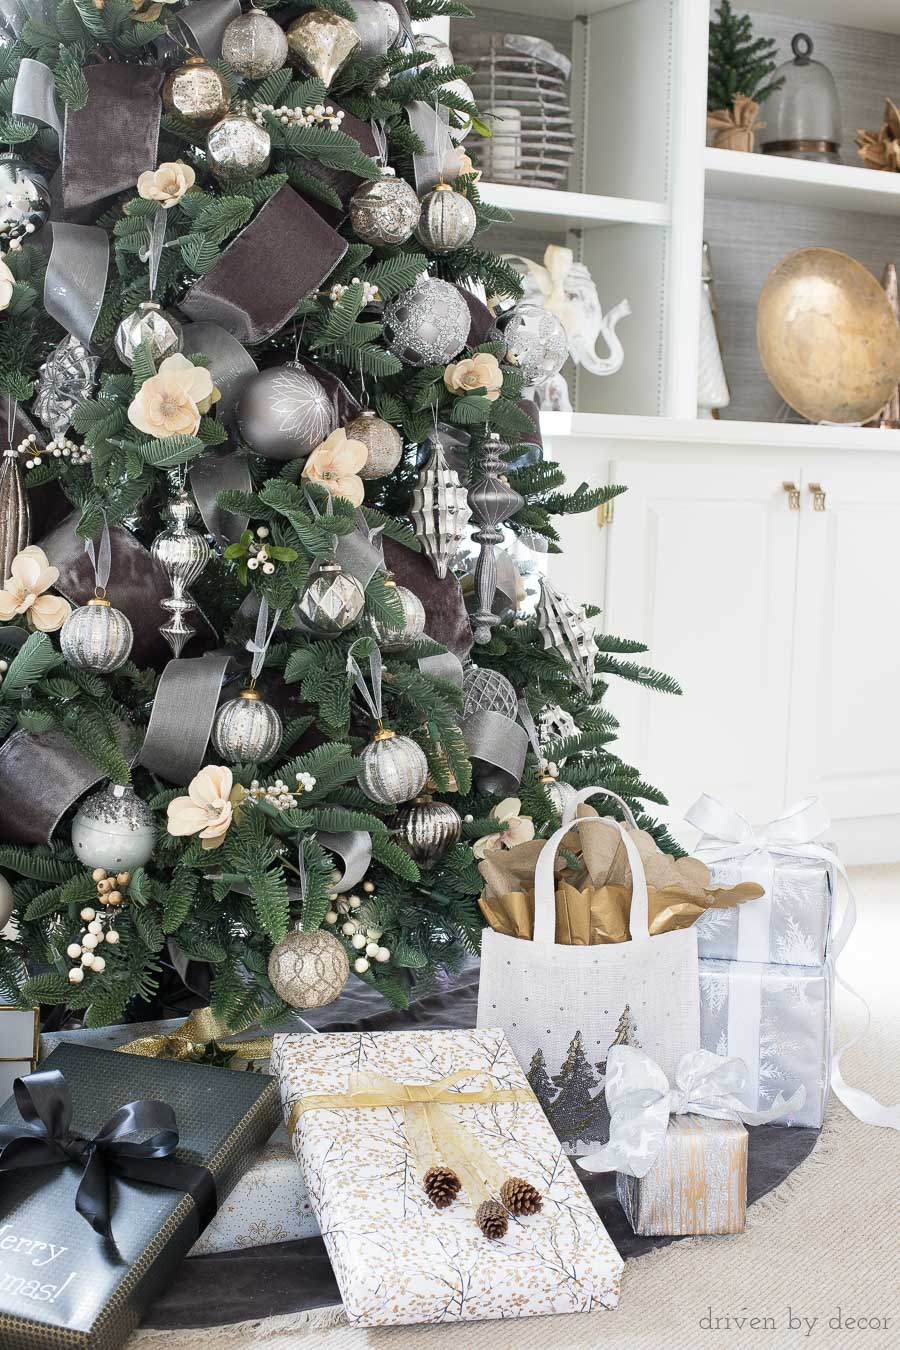 Beautiful Christmas tree with velvet ribbon and metallic ornaments along with gorgeously wrapped presents!